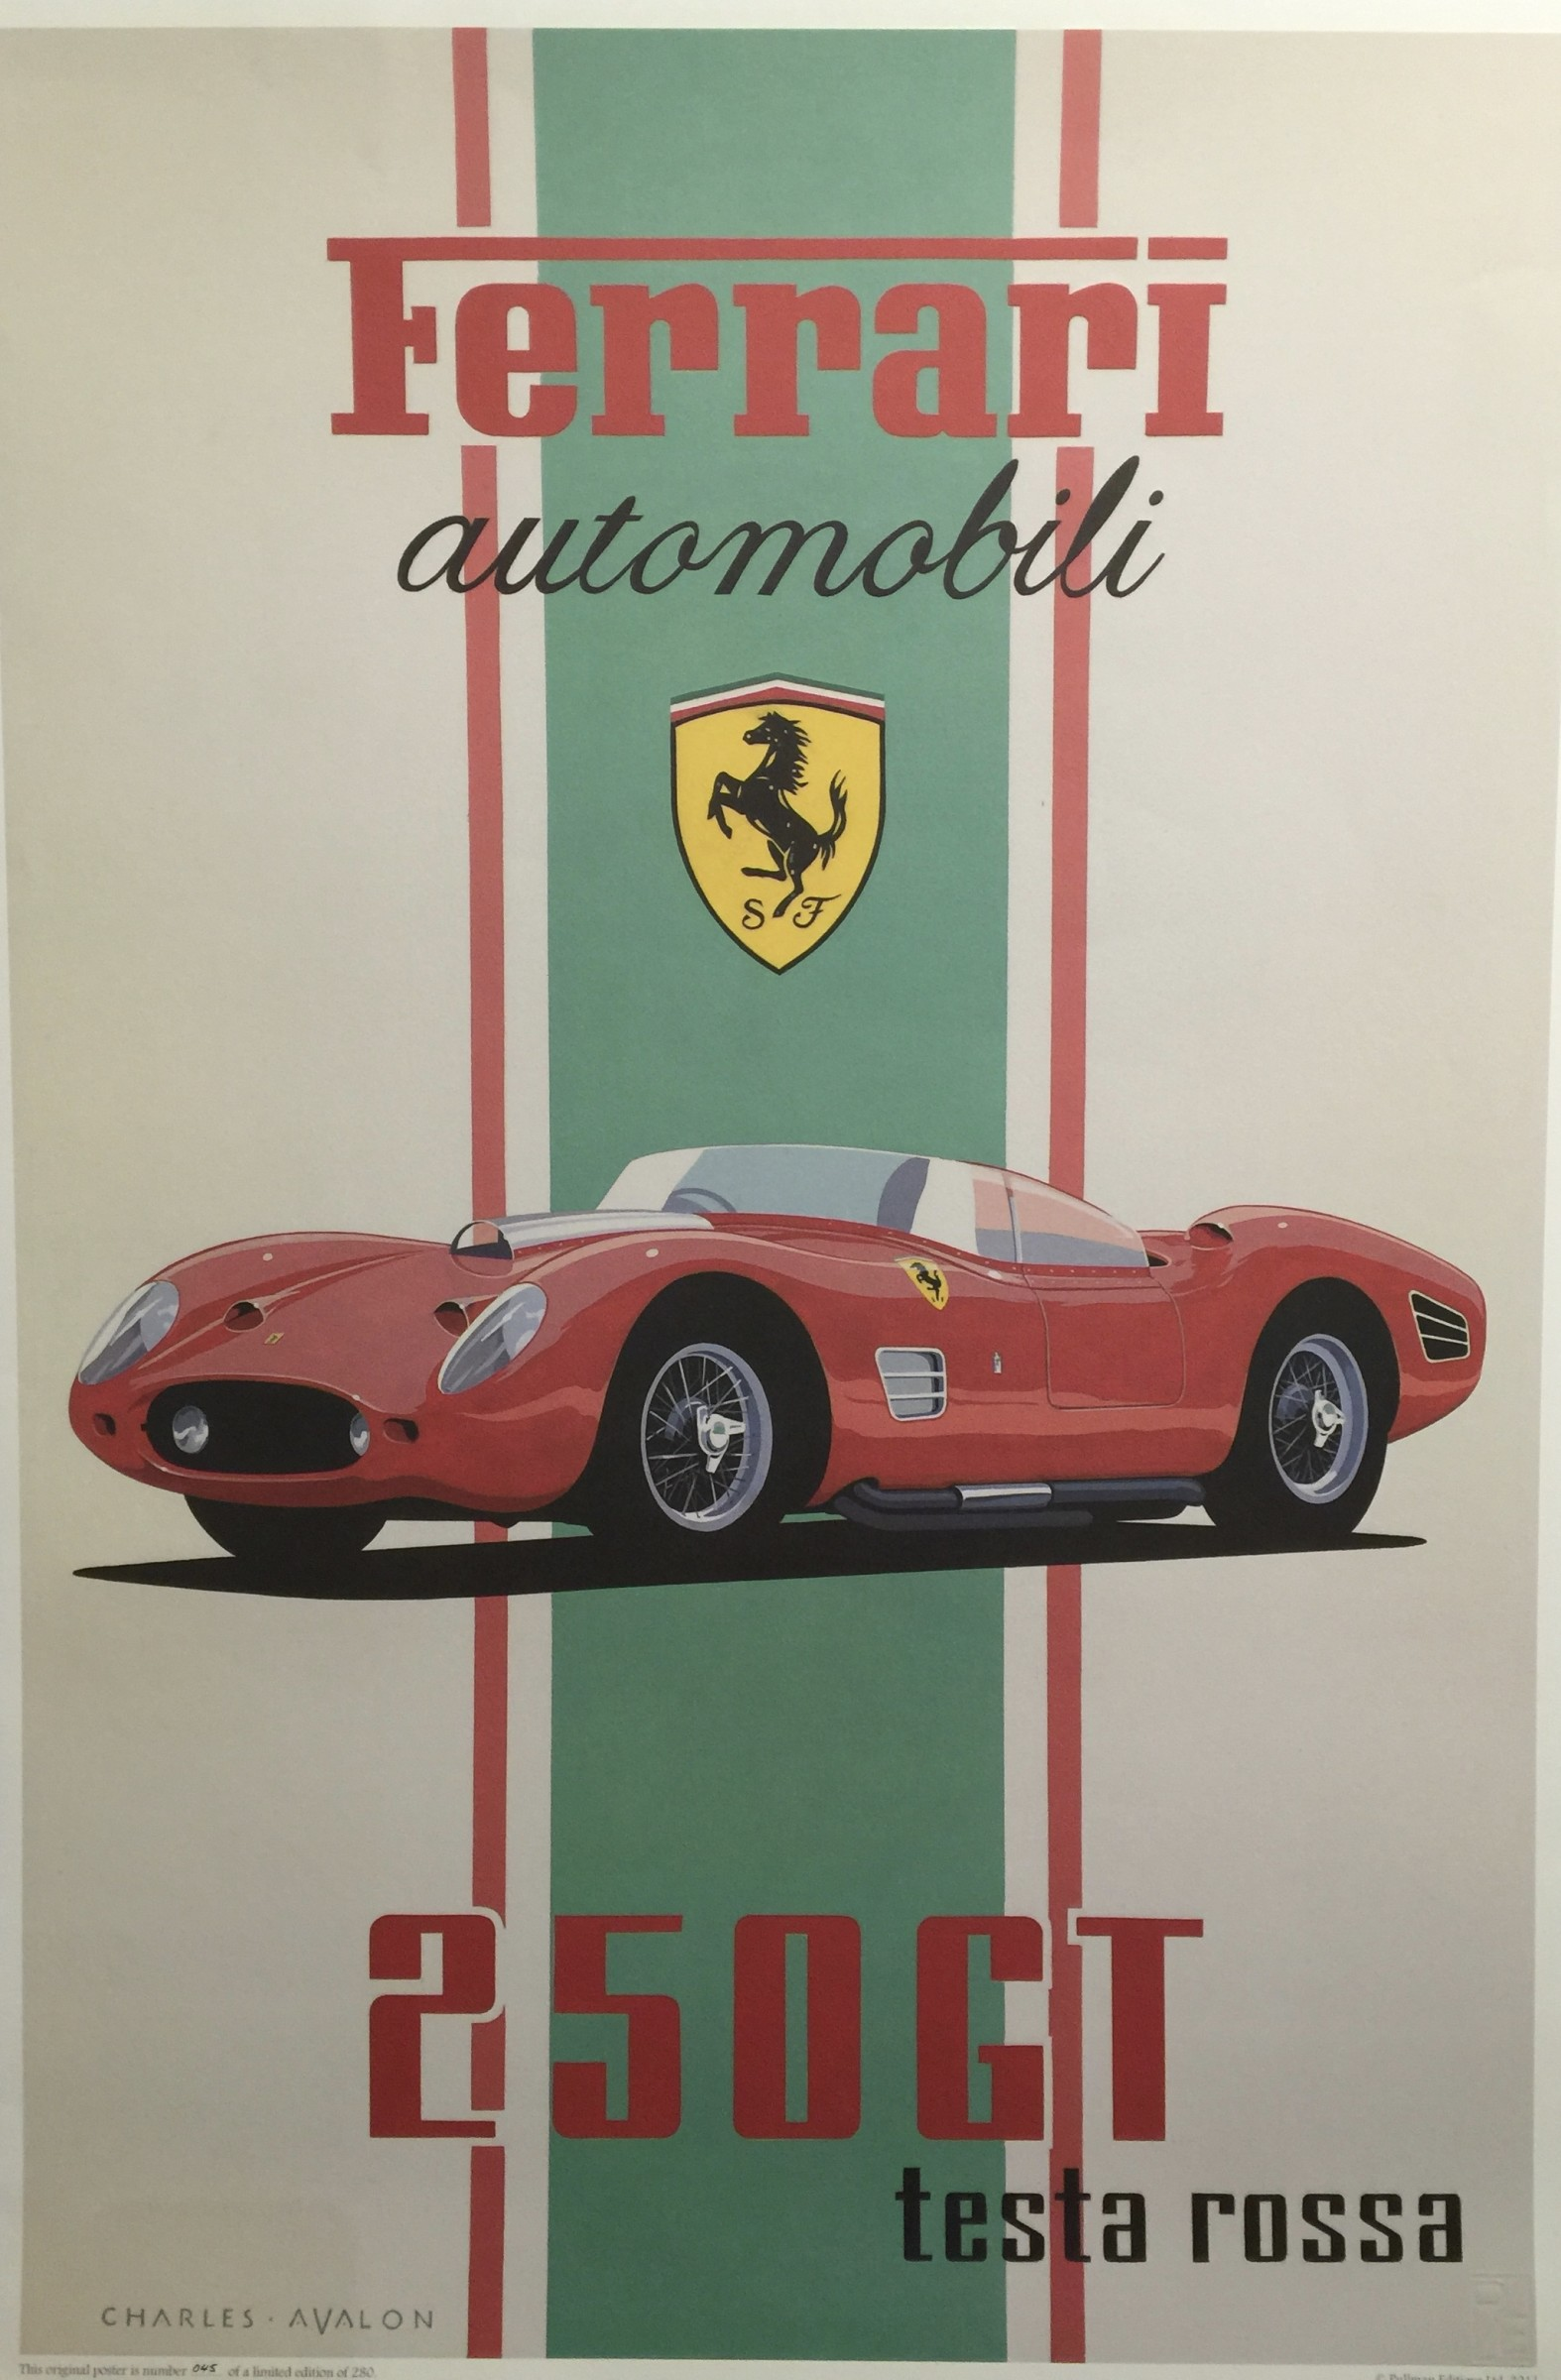 """<span class=""""link fancybox-details-link""""><a href=""""/artists/55-charles-avalon/works/502-charles-avalon-1960-ferrari-250gt-testa-rosa/"""">View Detail Page</a></span><div class=""""artist""""><strong>Charles Avalon</strong></div> <div class=""""title""""><em>1960 Ferrari 250GT Testa Rosa</em></div> <div class=""""medium"""">Limited Edition Print</div> <div class=""""dimensions"""">97 x 66 cm</div> <div class=""""edition_details"""">45/280</div>"""